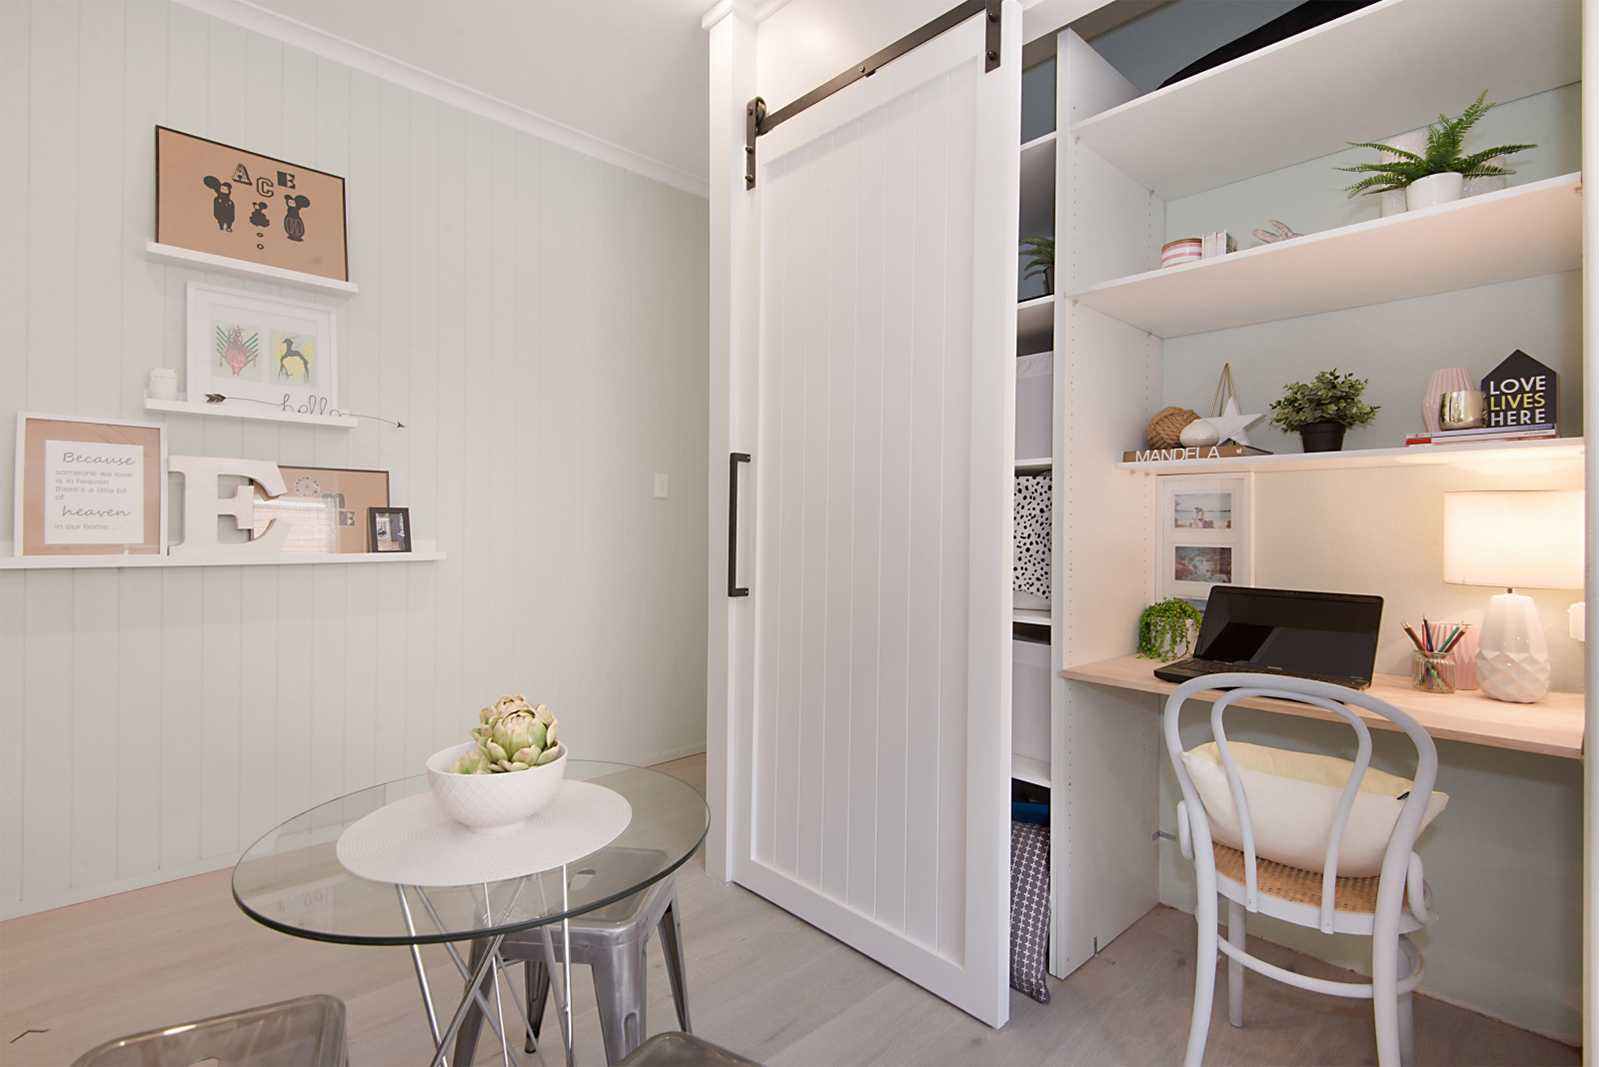 Cherie-Barber-study-styling-image-solo-1-for-Mortdale-Apartment-blog